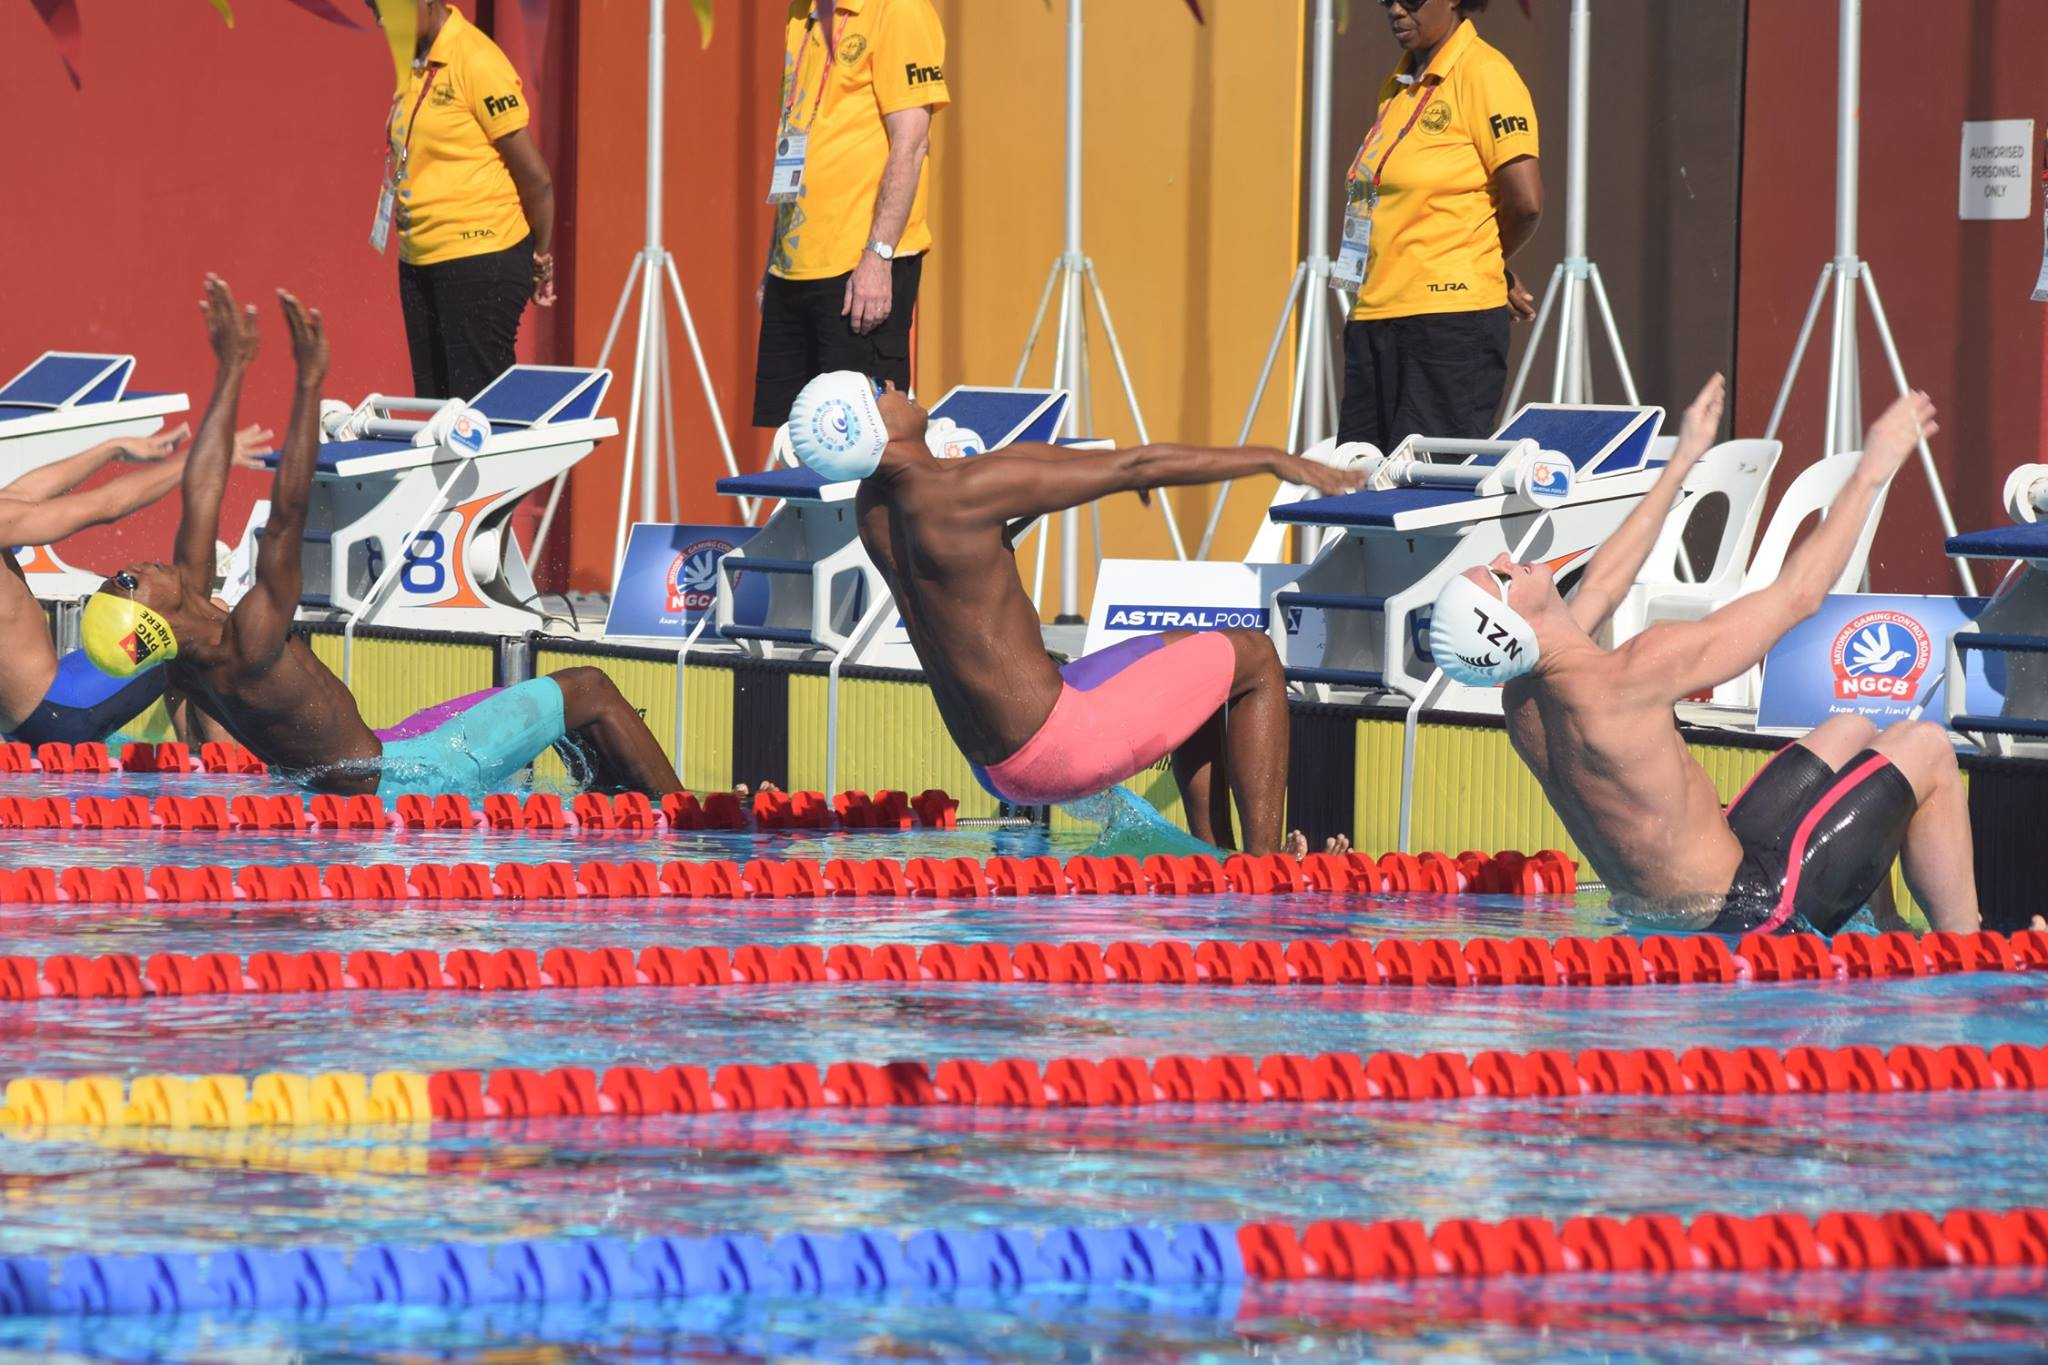 National men's swimmer Oakley Johns (second from right) at the start of his race during the Oceania Swimming Championships in Port Moresby, Papua New Guinea on June 27, 2018.  Photo:  Fiji Swimming